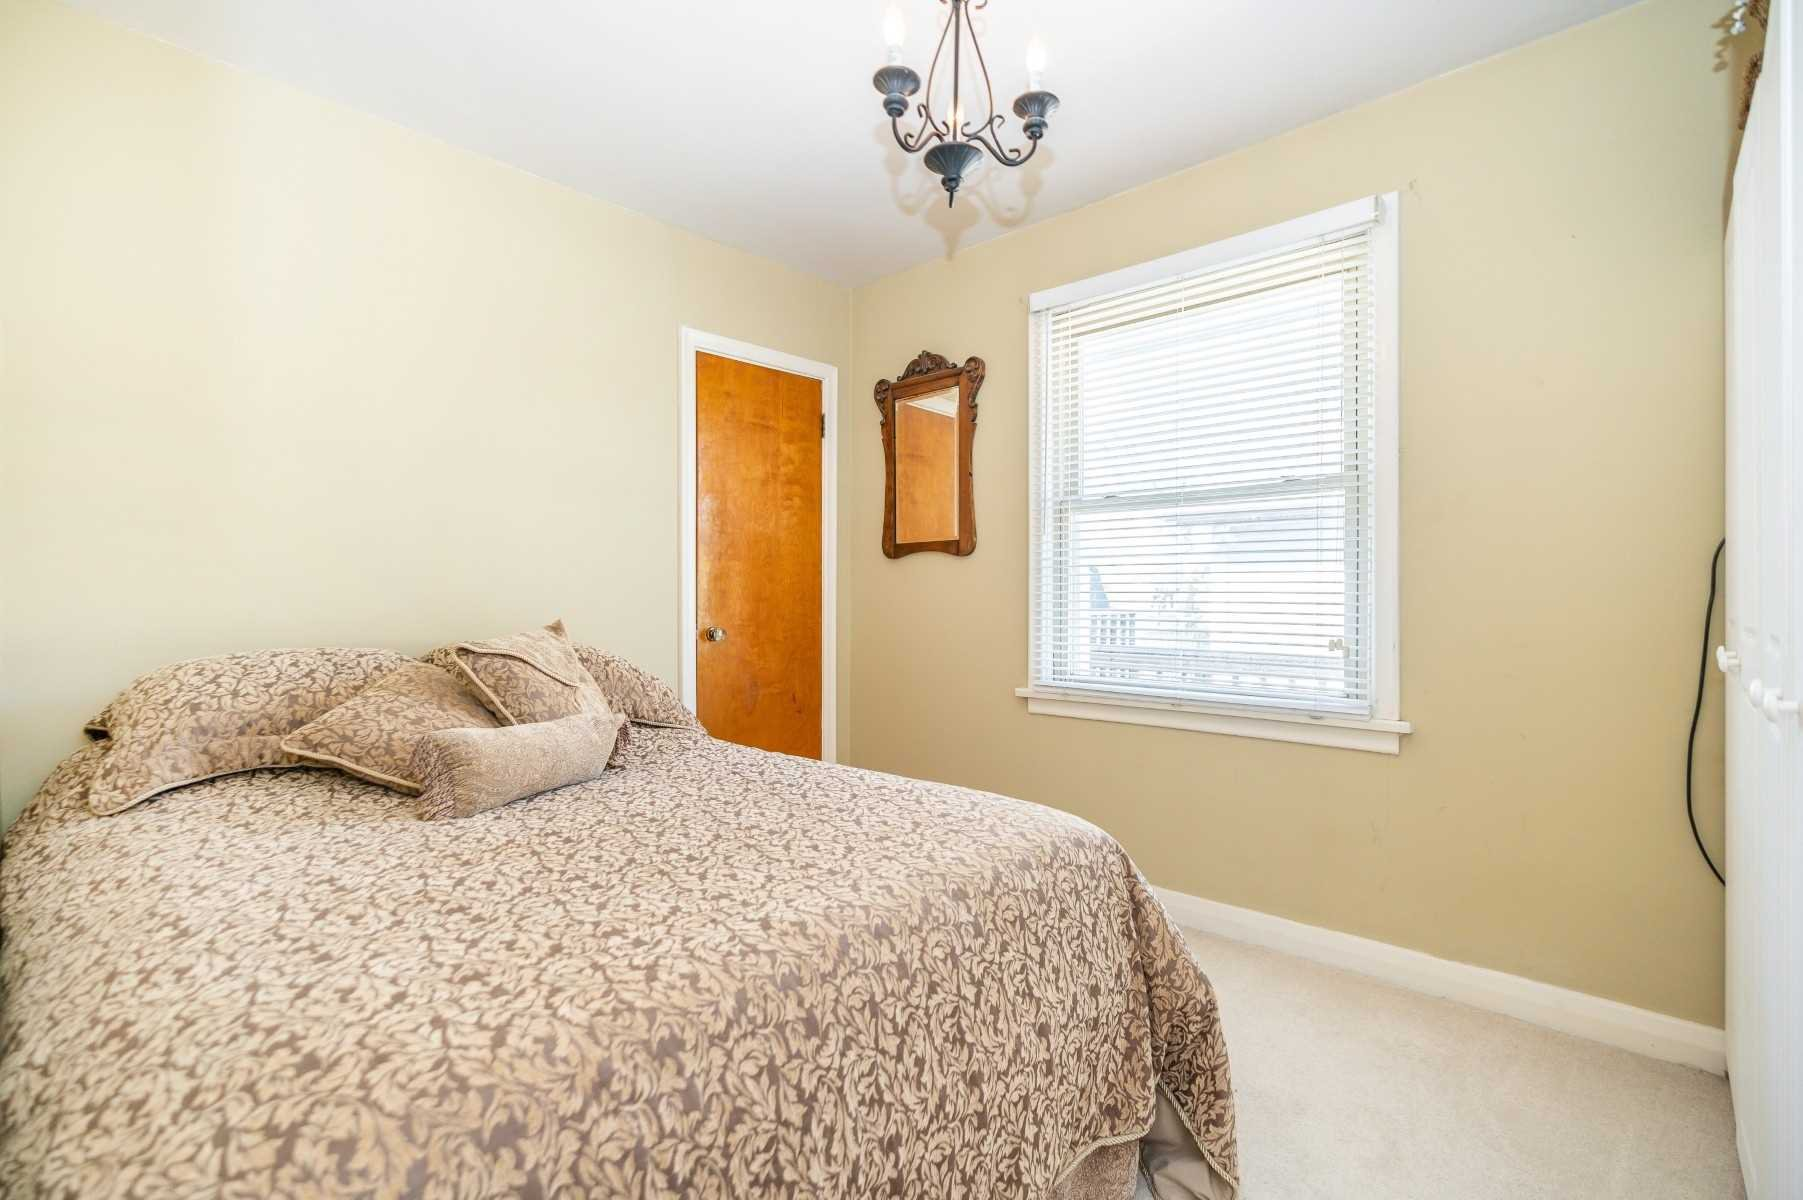 Photo 36: Photos: 40 Eastlawn Street in Oshawa: Donevan House (Bungalow) for sale : MLS®# E4769026